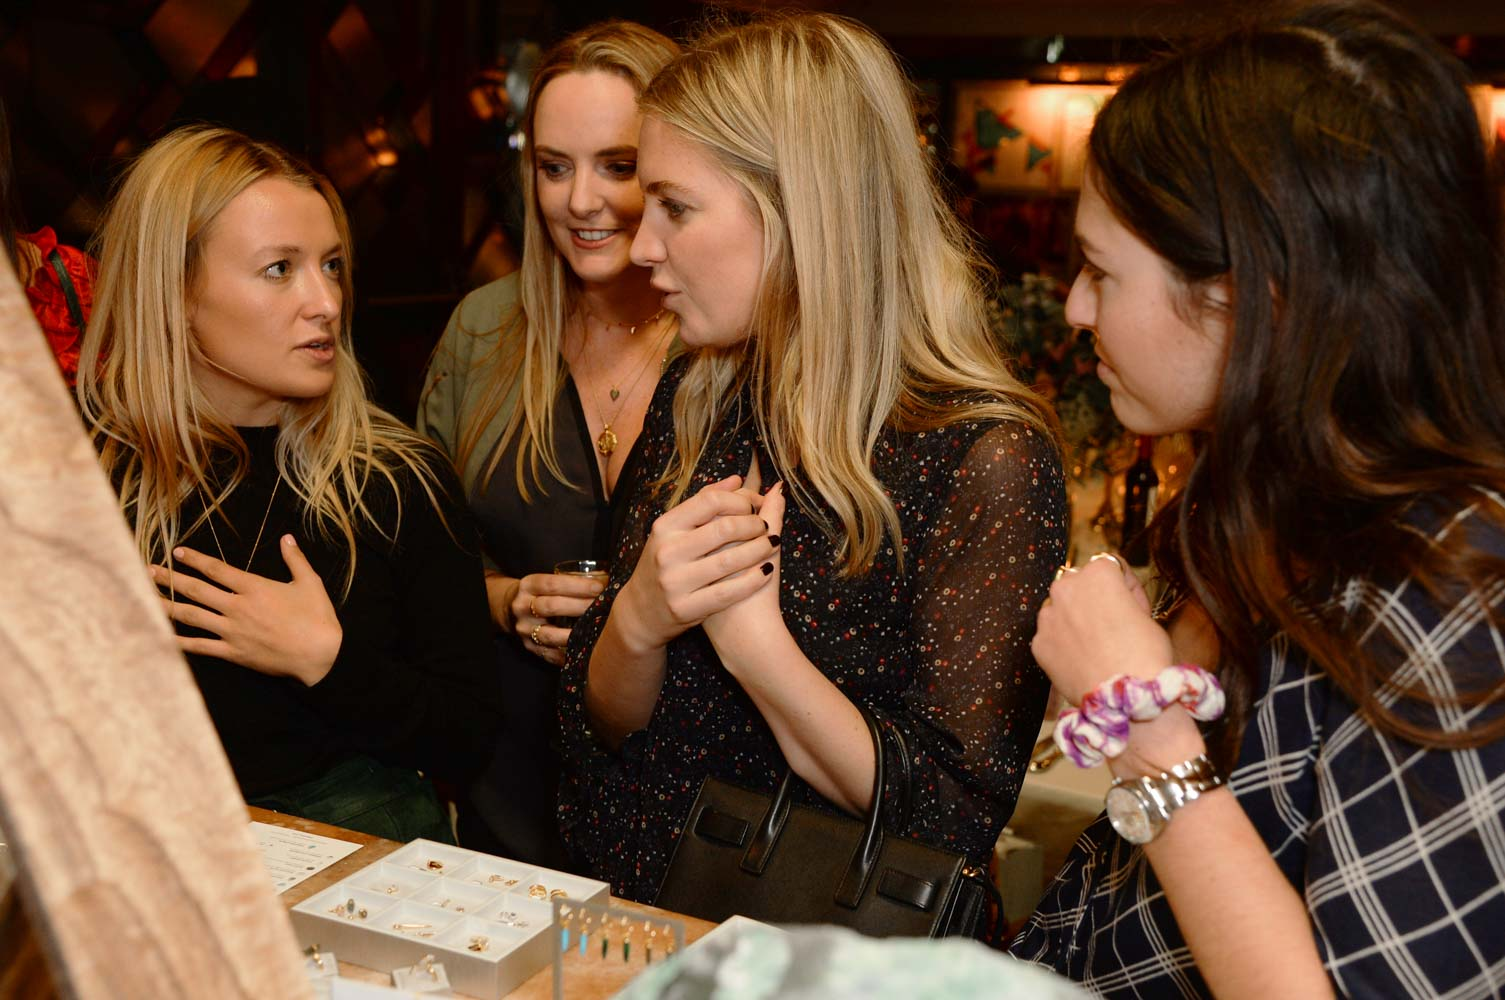 Scarlett Bowman, Marisa, Marissa & Lily talk which gemstones they are drawn to